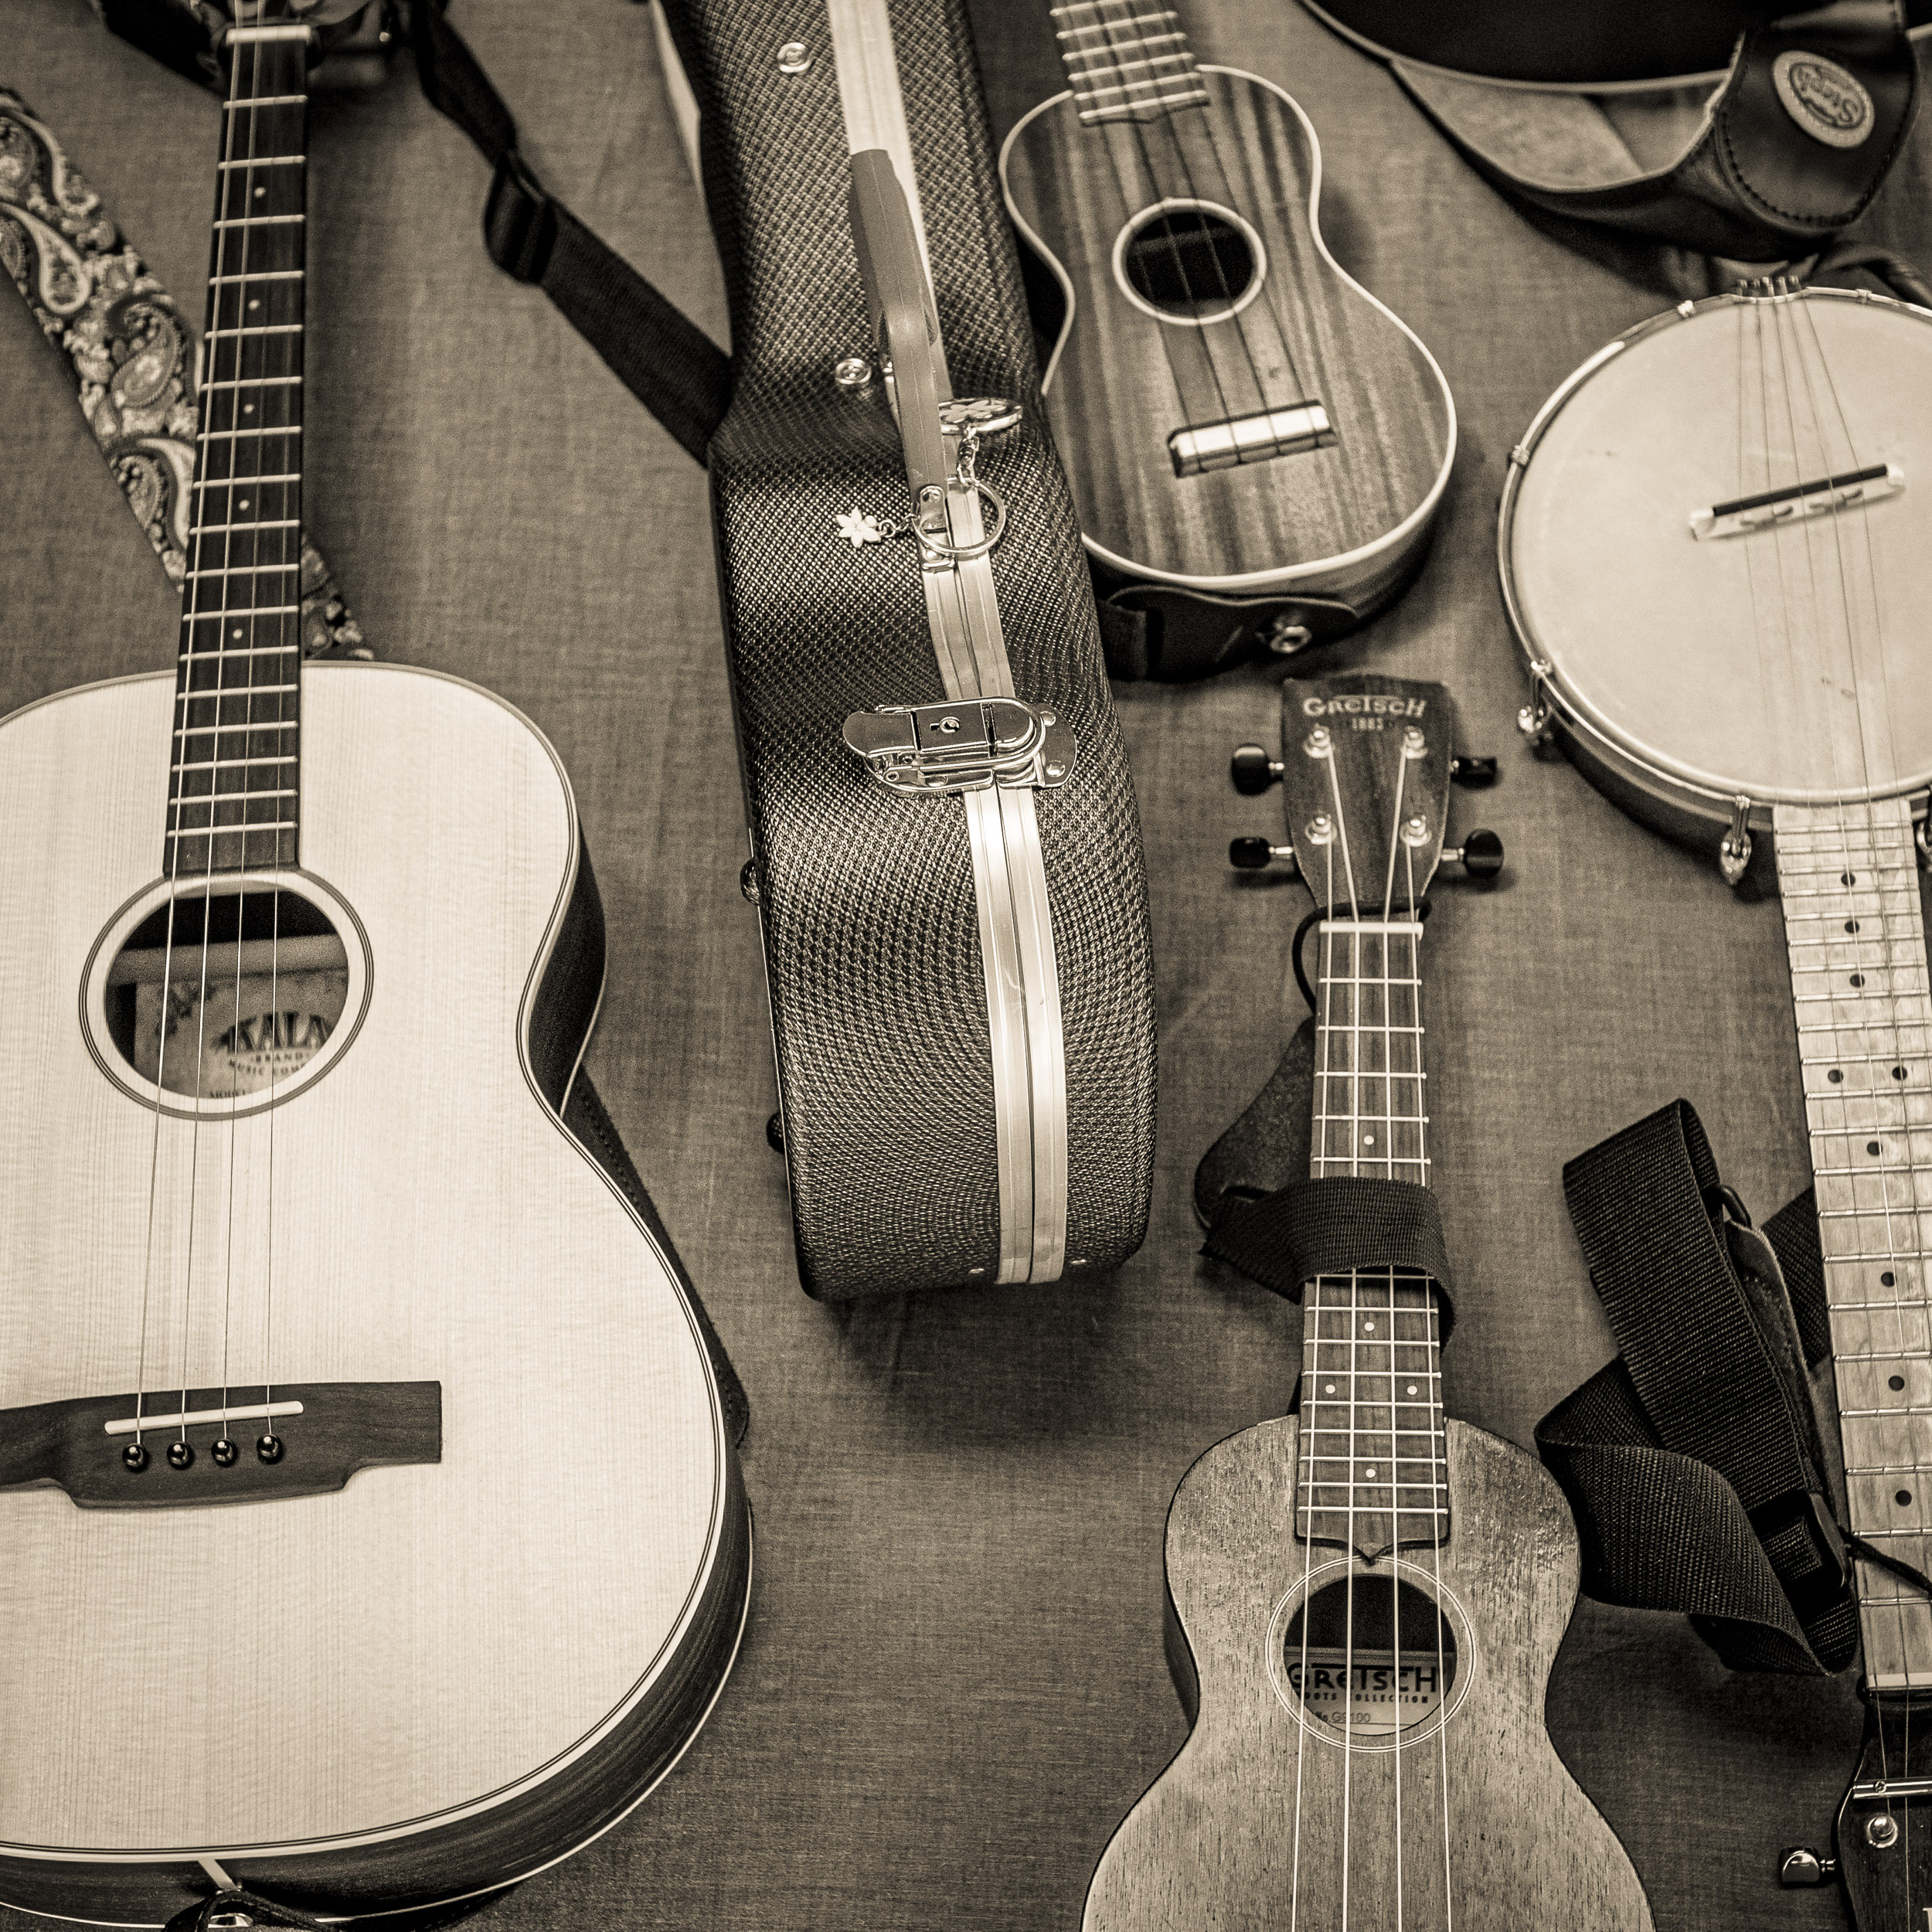 Four musical instruments